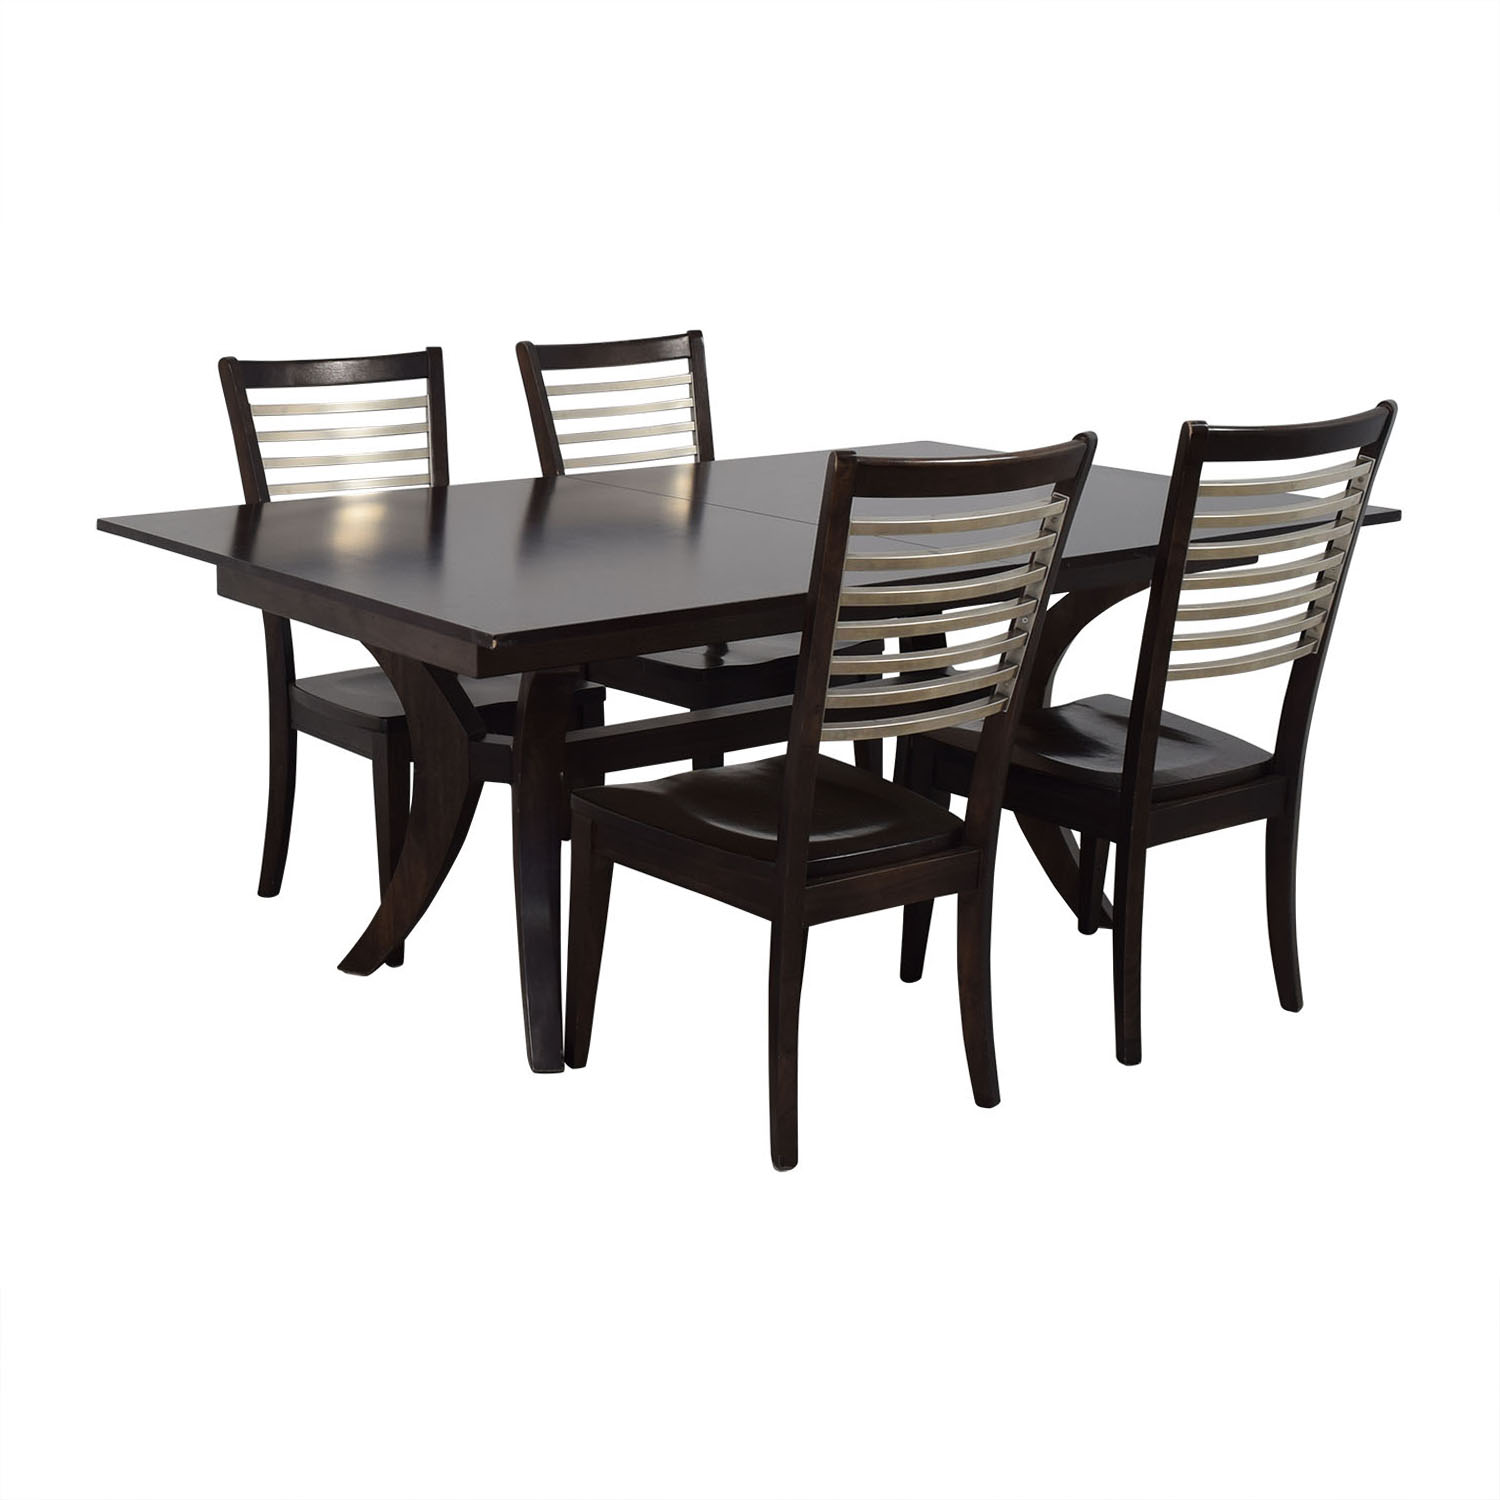 Bassett Furniture Bassett Furniture Extendable Dining Set used